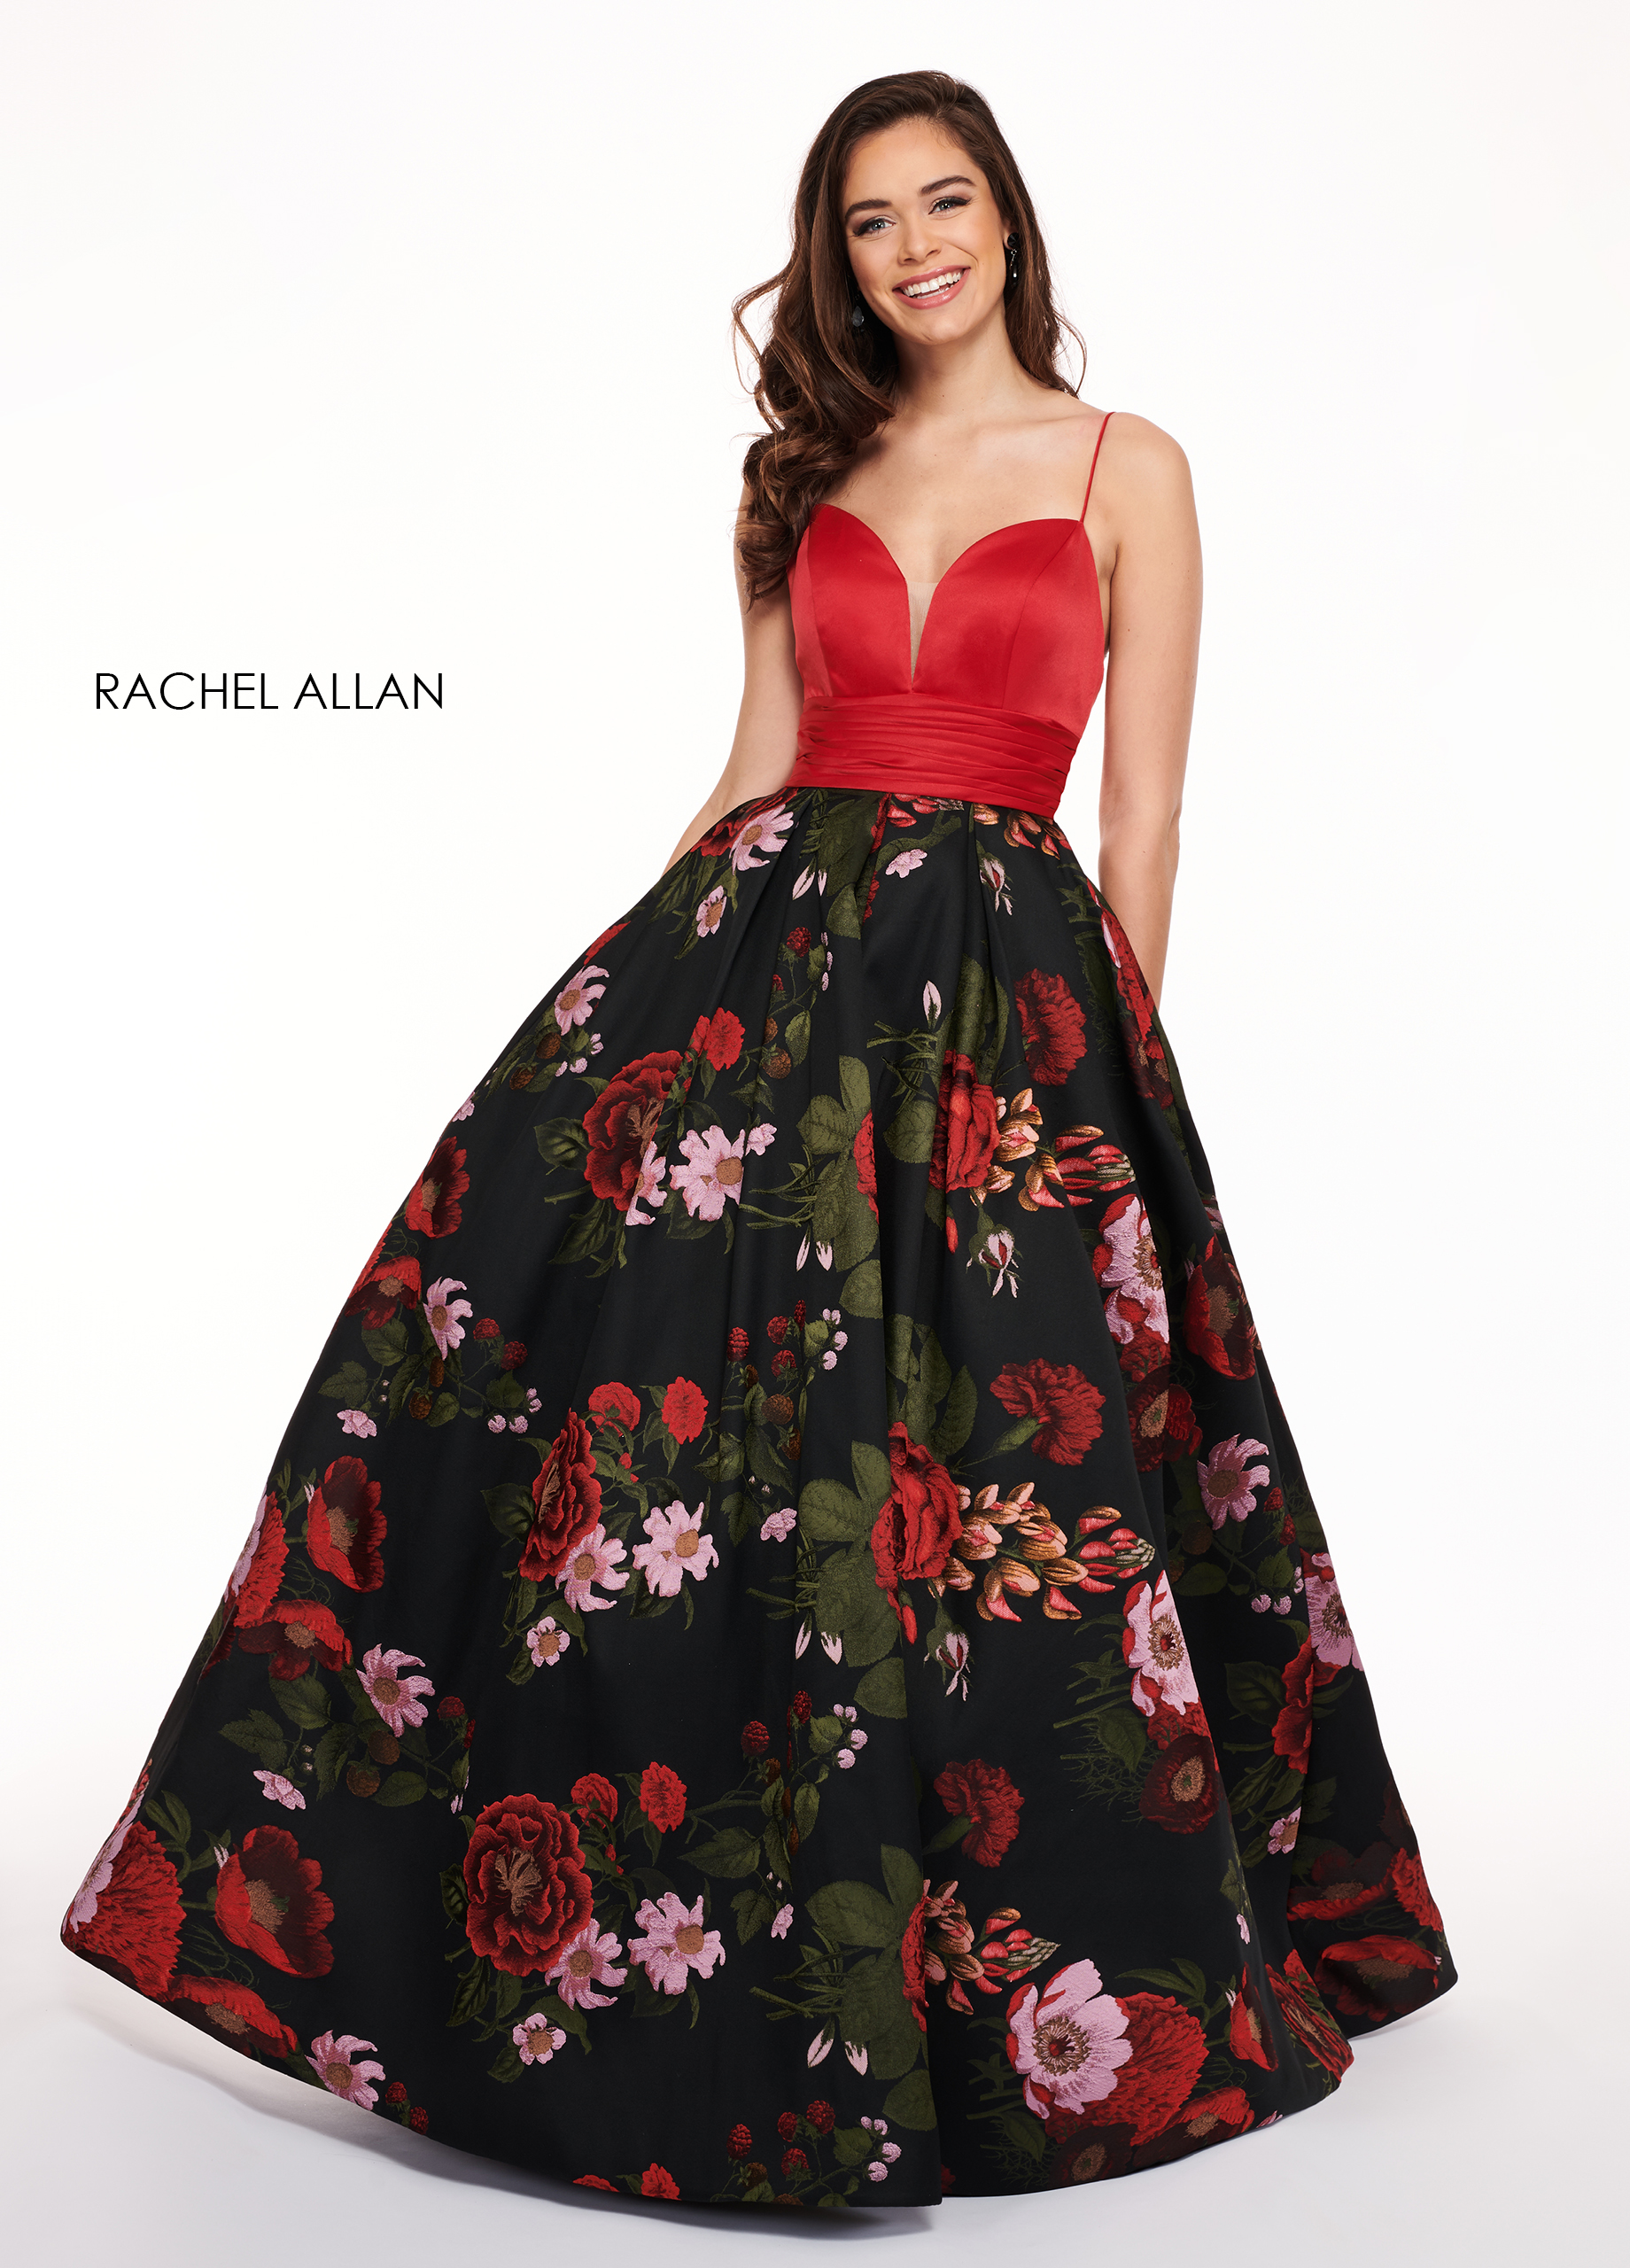 Sweetheart Ball Gowns Prom Dresses in Black Color